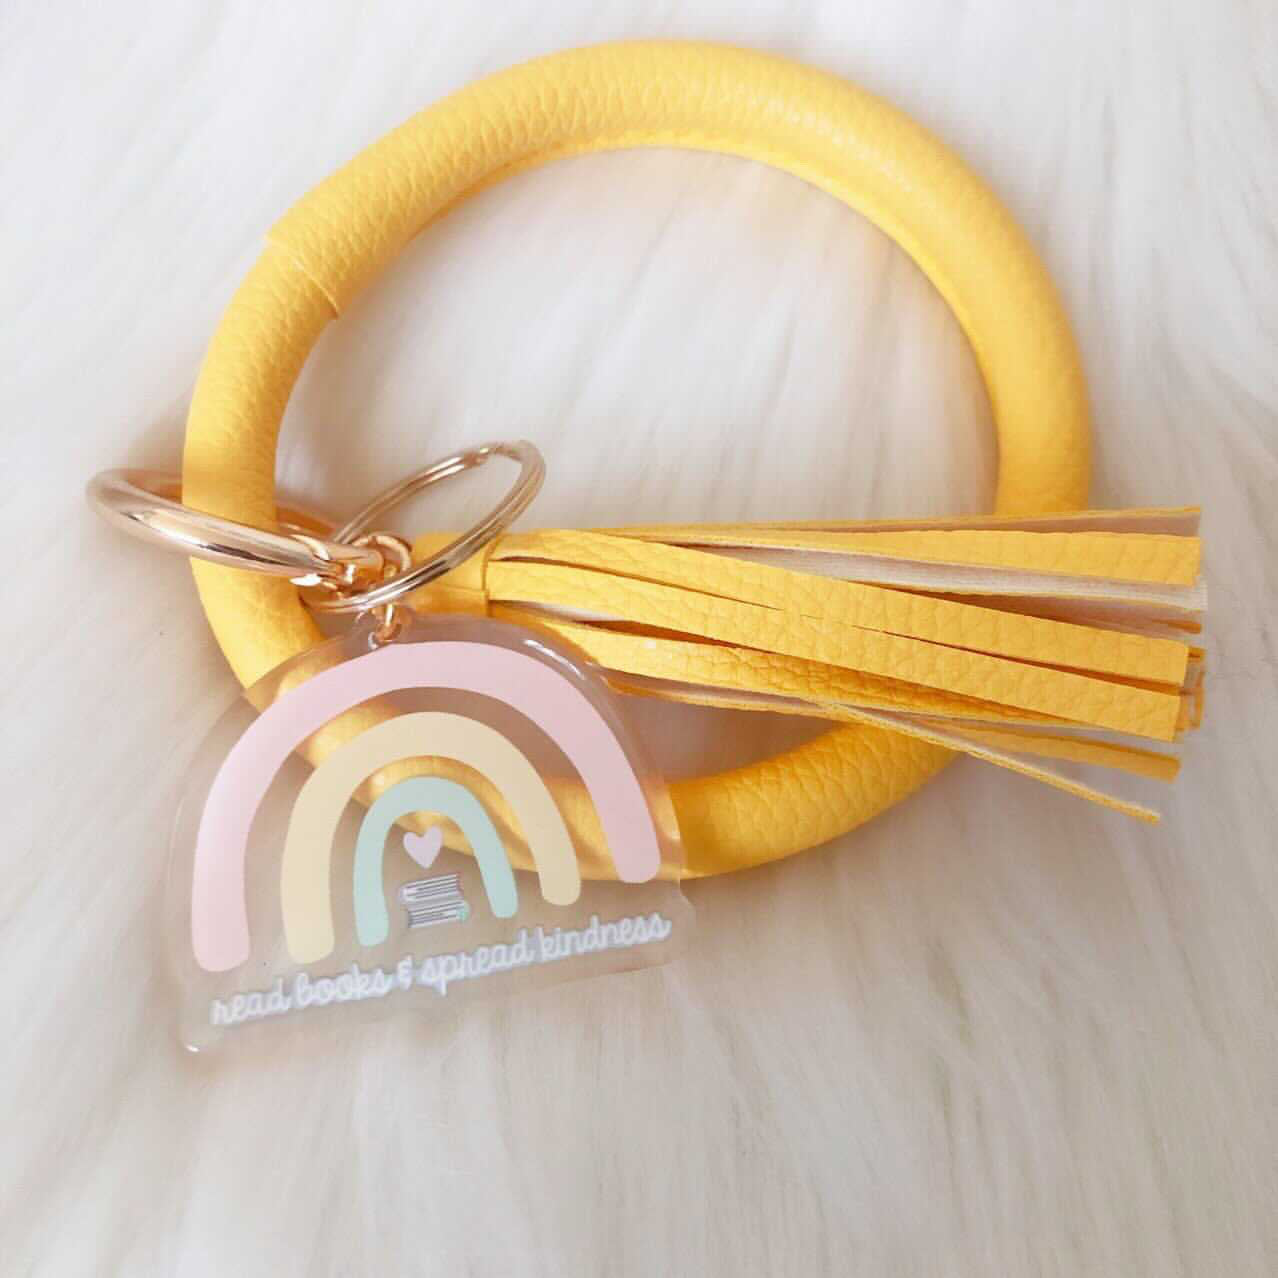 Read Books Yellow Bangle | Keychain-Home Decor-My Secret Copy-Crescent Moon Store